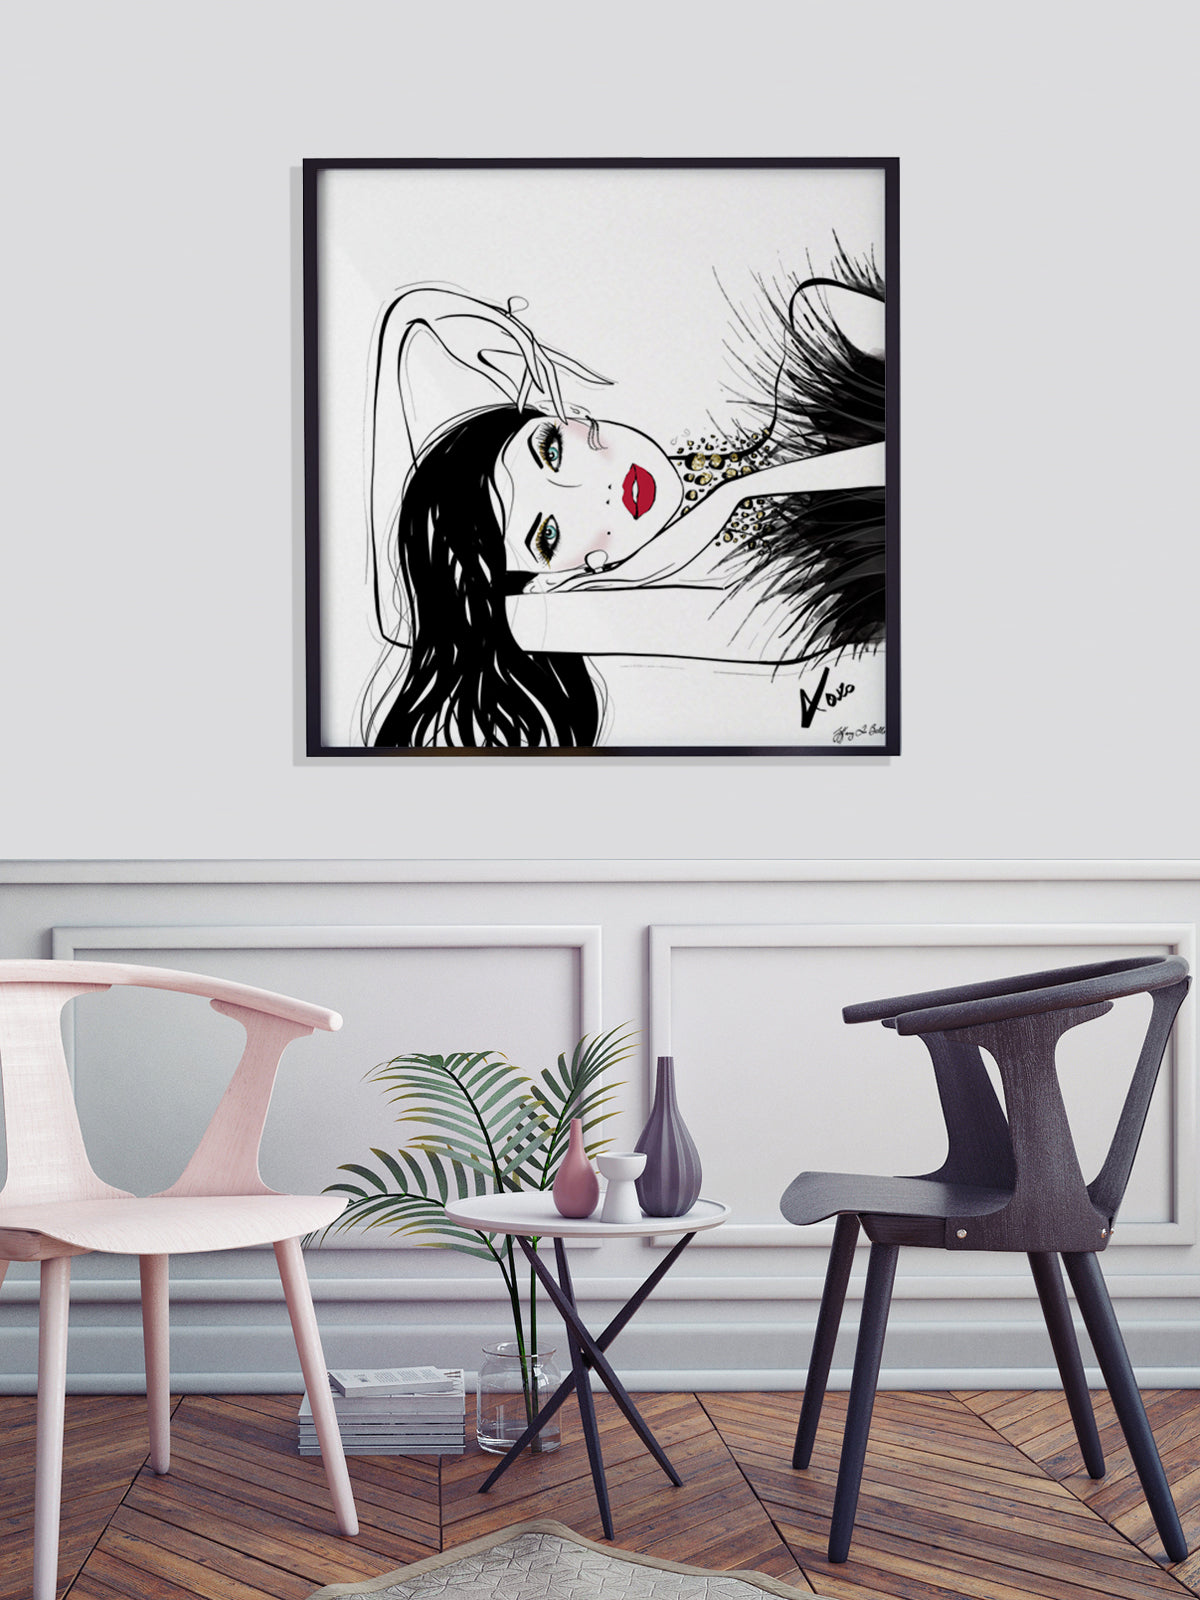 A Peaceful Moment - Illustration - Limited Edition Print - Tiffany La Belle